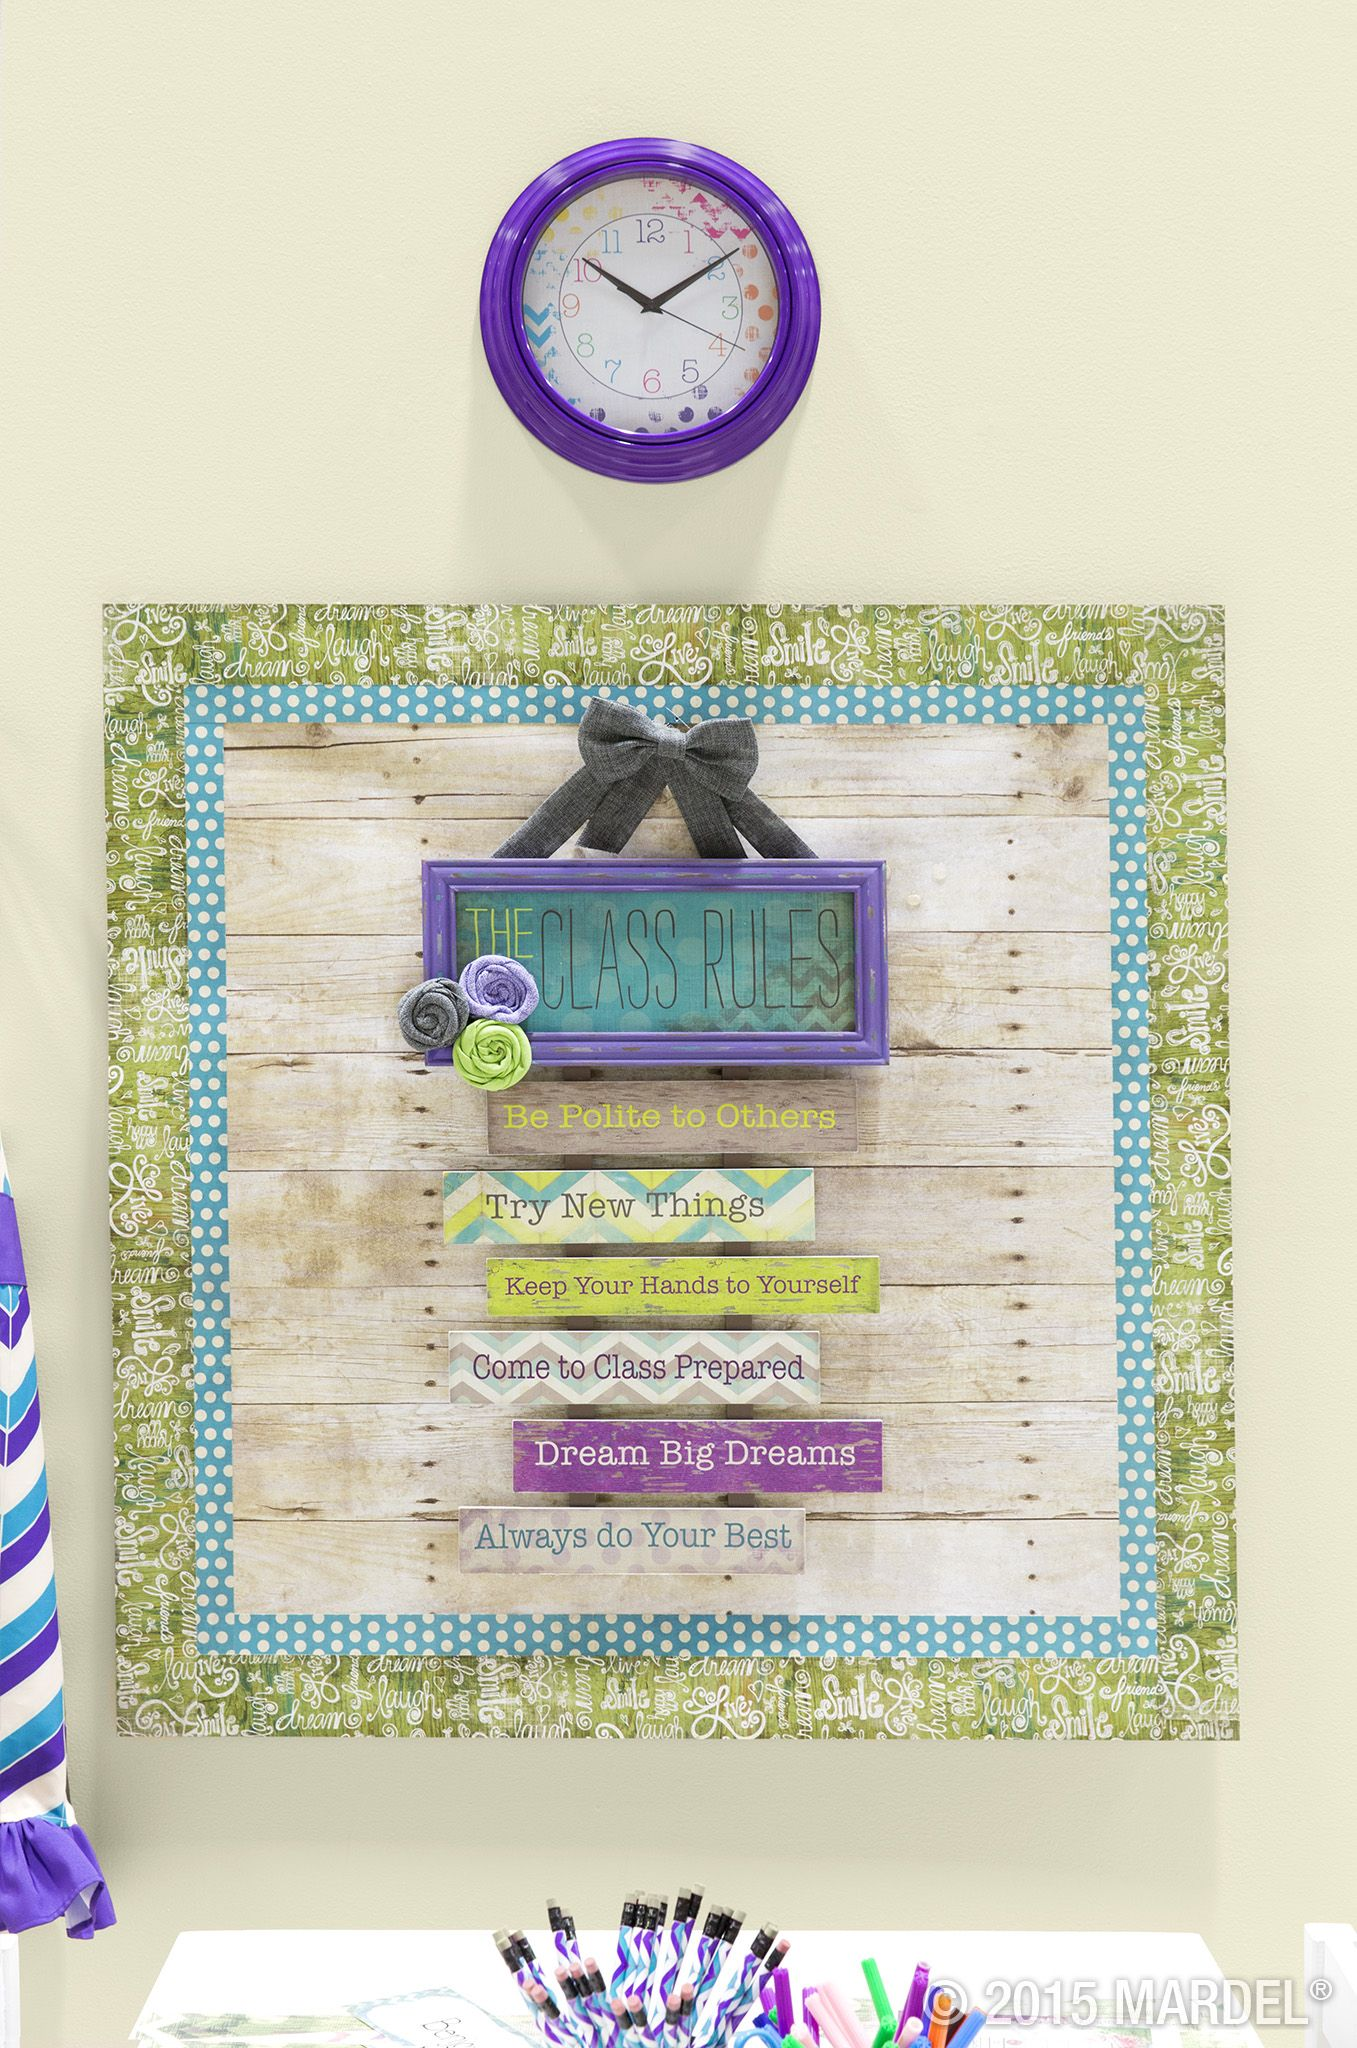 Vintage Classroom Decor ~ Retro chic classroom décor inspired by the sweet shades